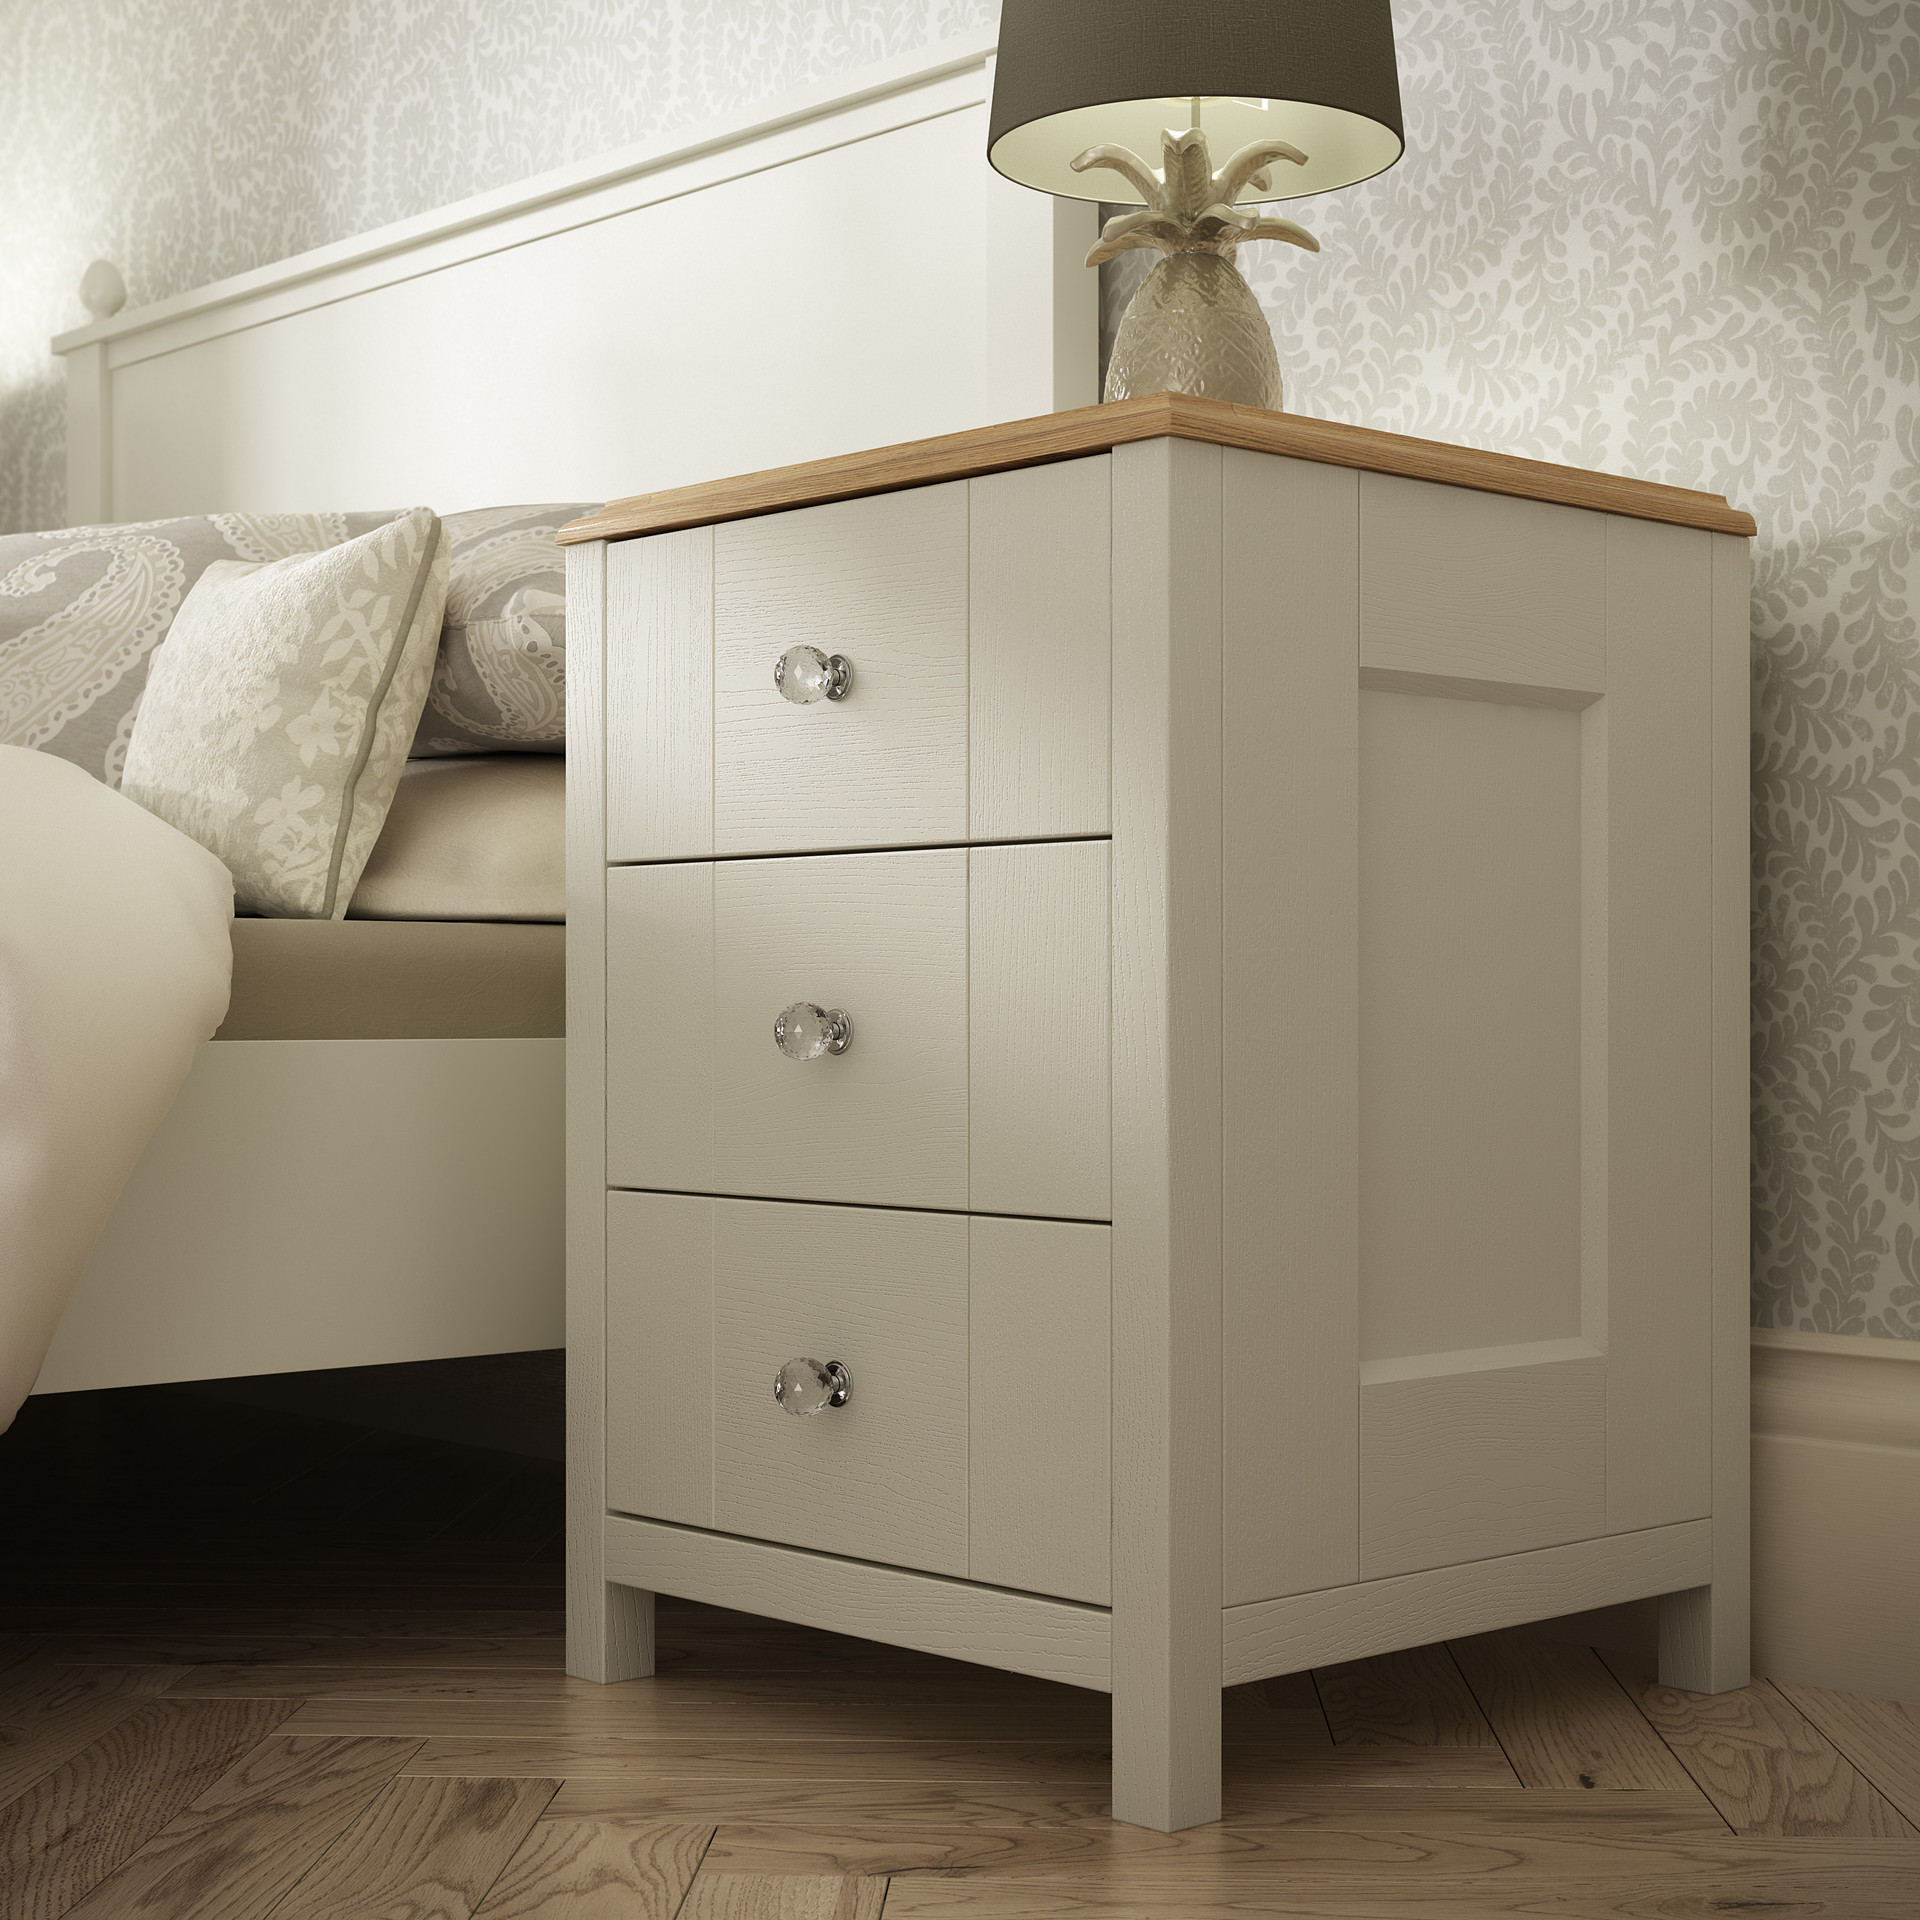 Cool Artstation Laura Ashley Bedroom Furniture Danny Costello Download Free Architecture Designs Scobabritishbridgeorg